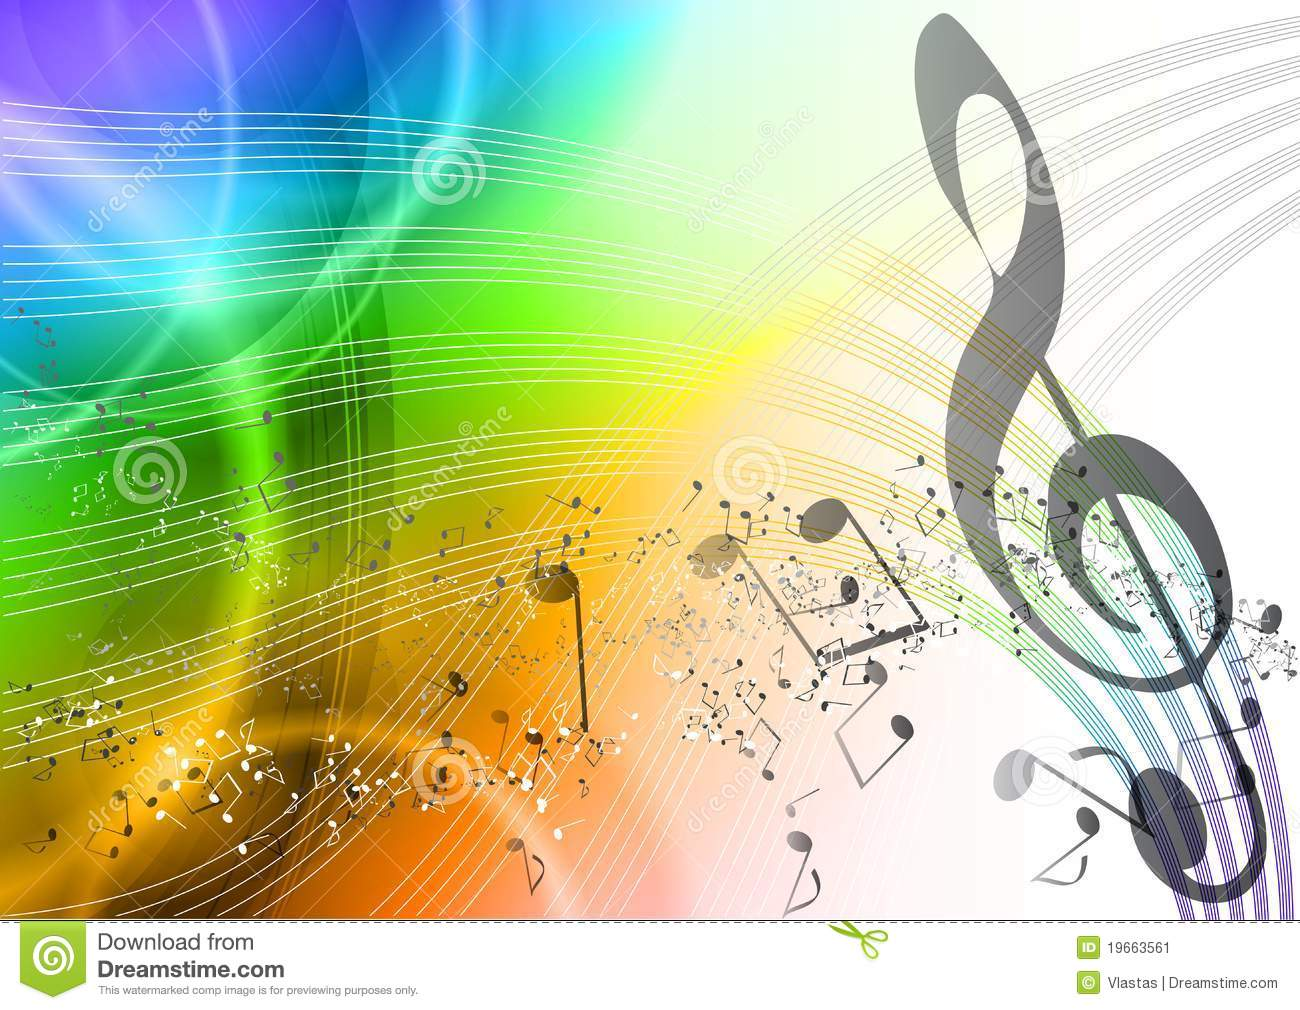 Rainbow Music Stock Images: Rainbow Music Stock Vector. Illustration Of Happy